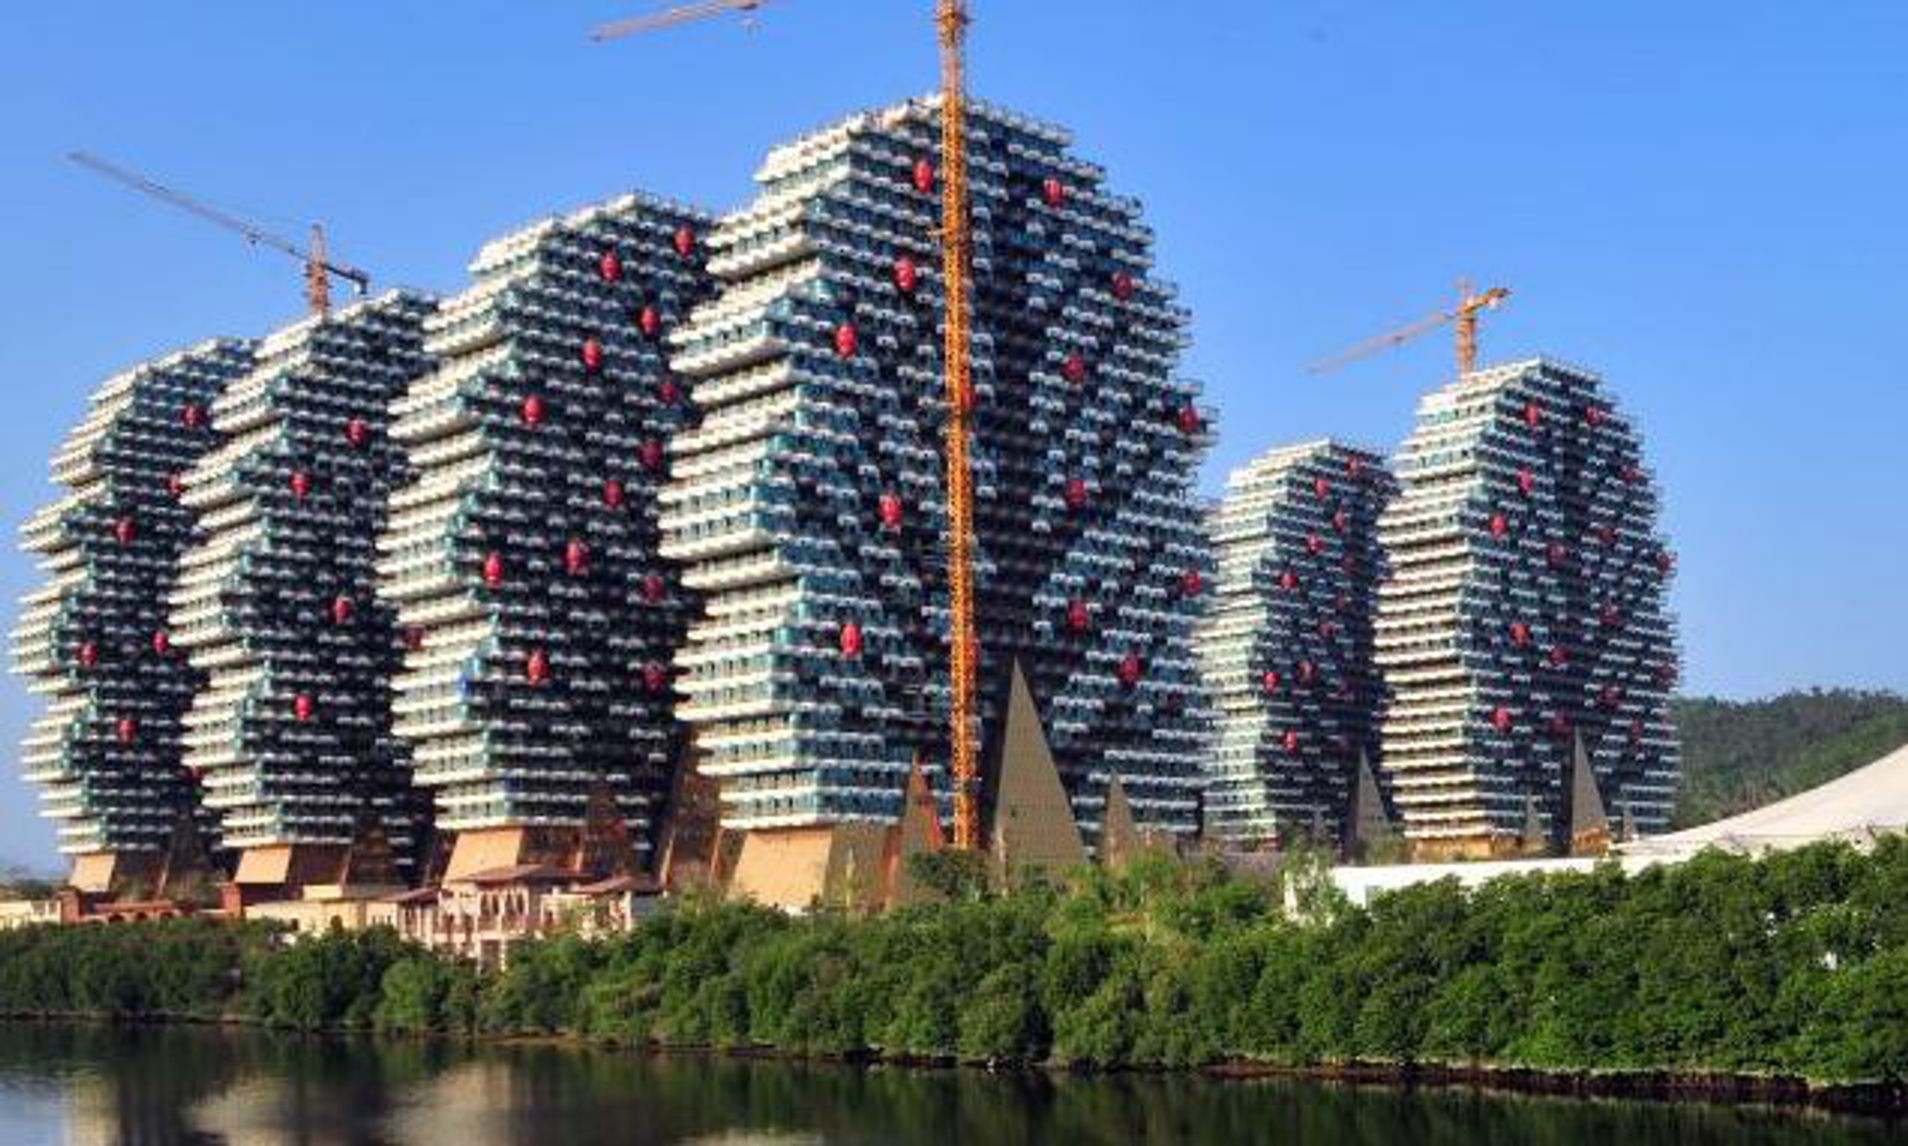 China S Lego Hotel The 7 Star Bloc That Resembles The